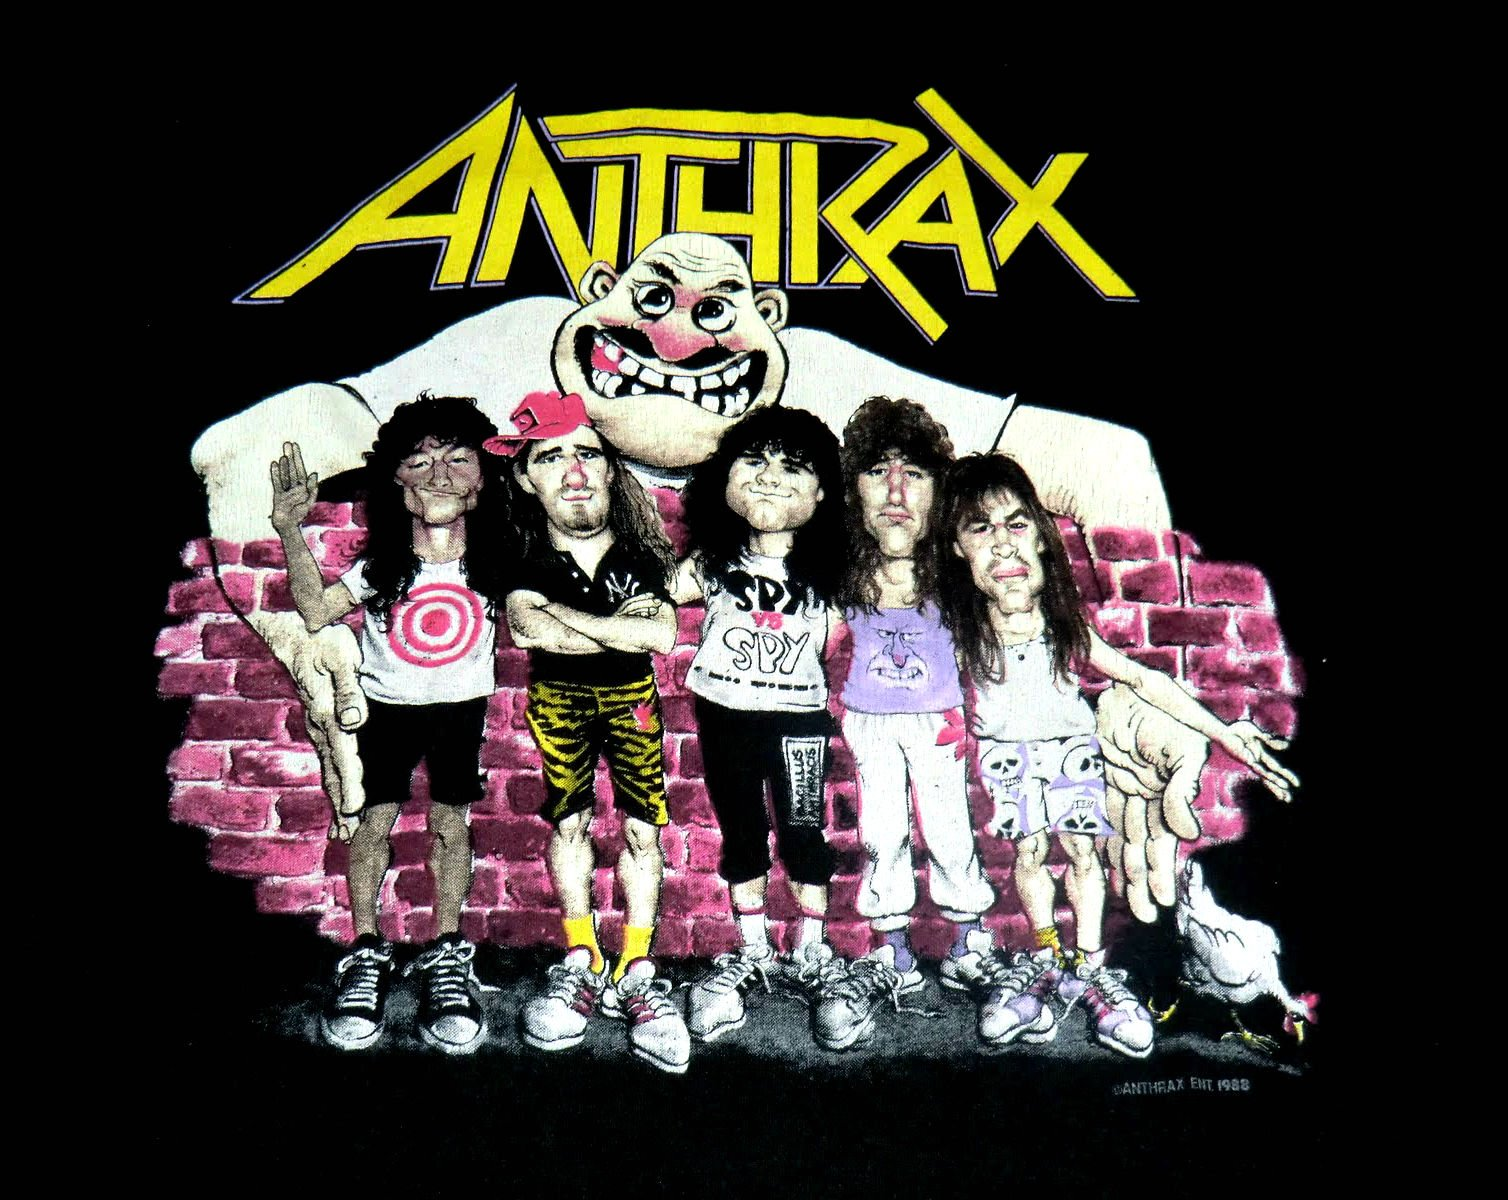 Anthrax Wallpapers 149SI53 029 Mb   4USkY 1508x1200